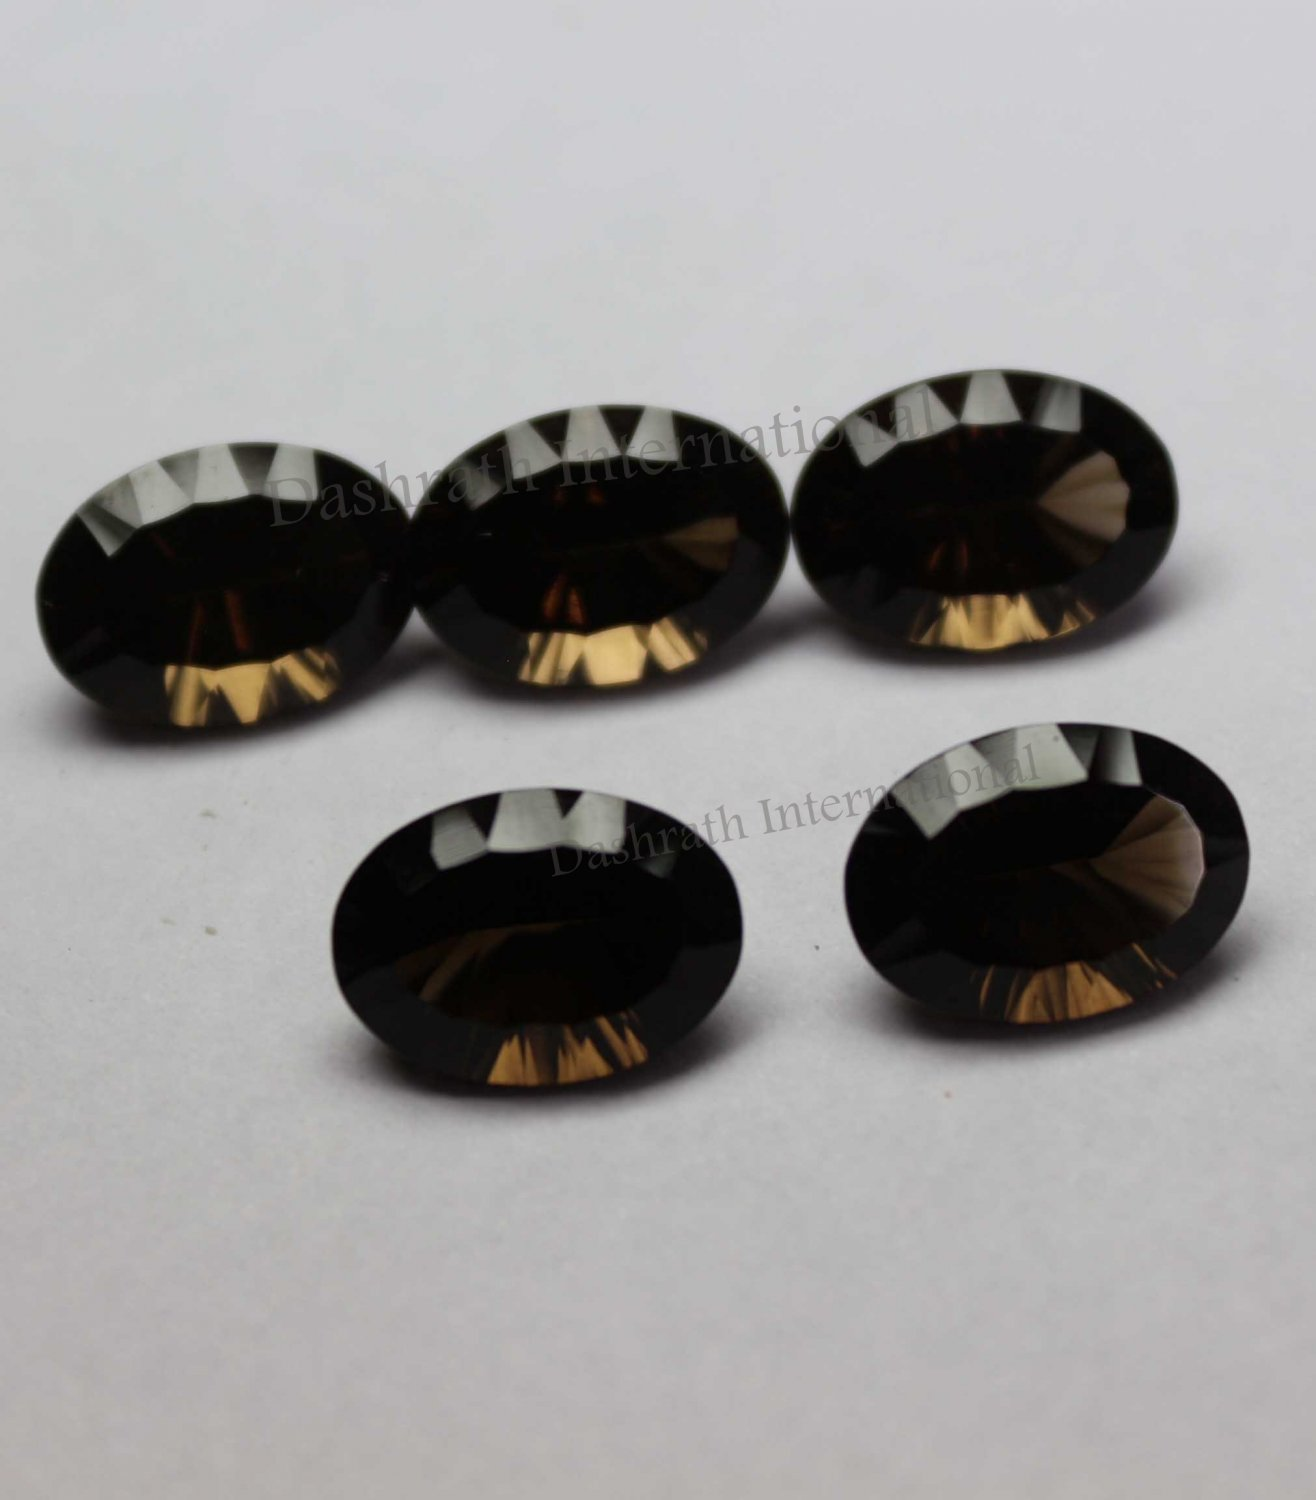 6x8mm Natural Smoky Quartz Concave Cut  Oval 75 Pieces Lot  (SI) Top Quality  Loose Gemstone